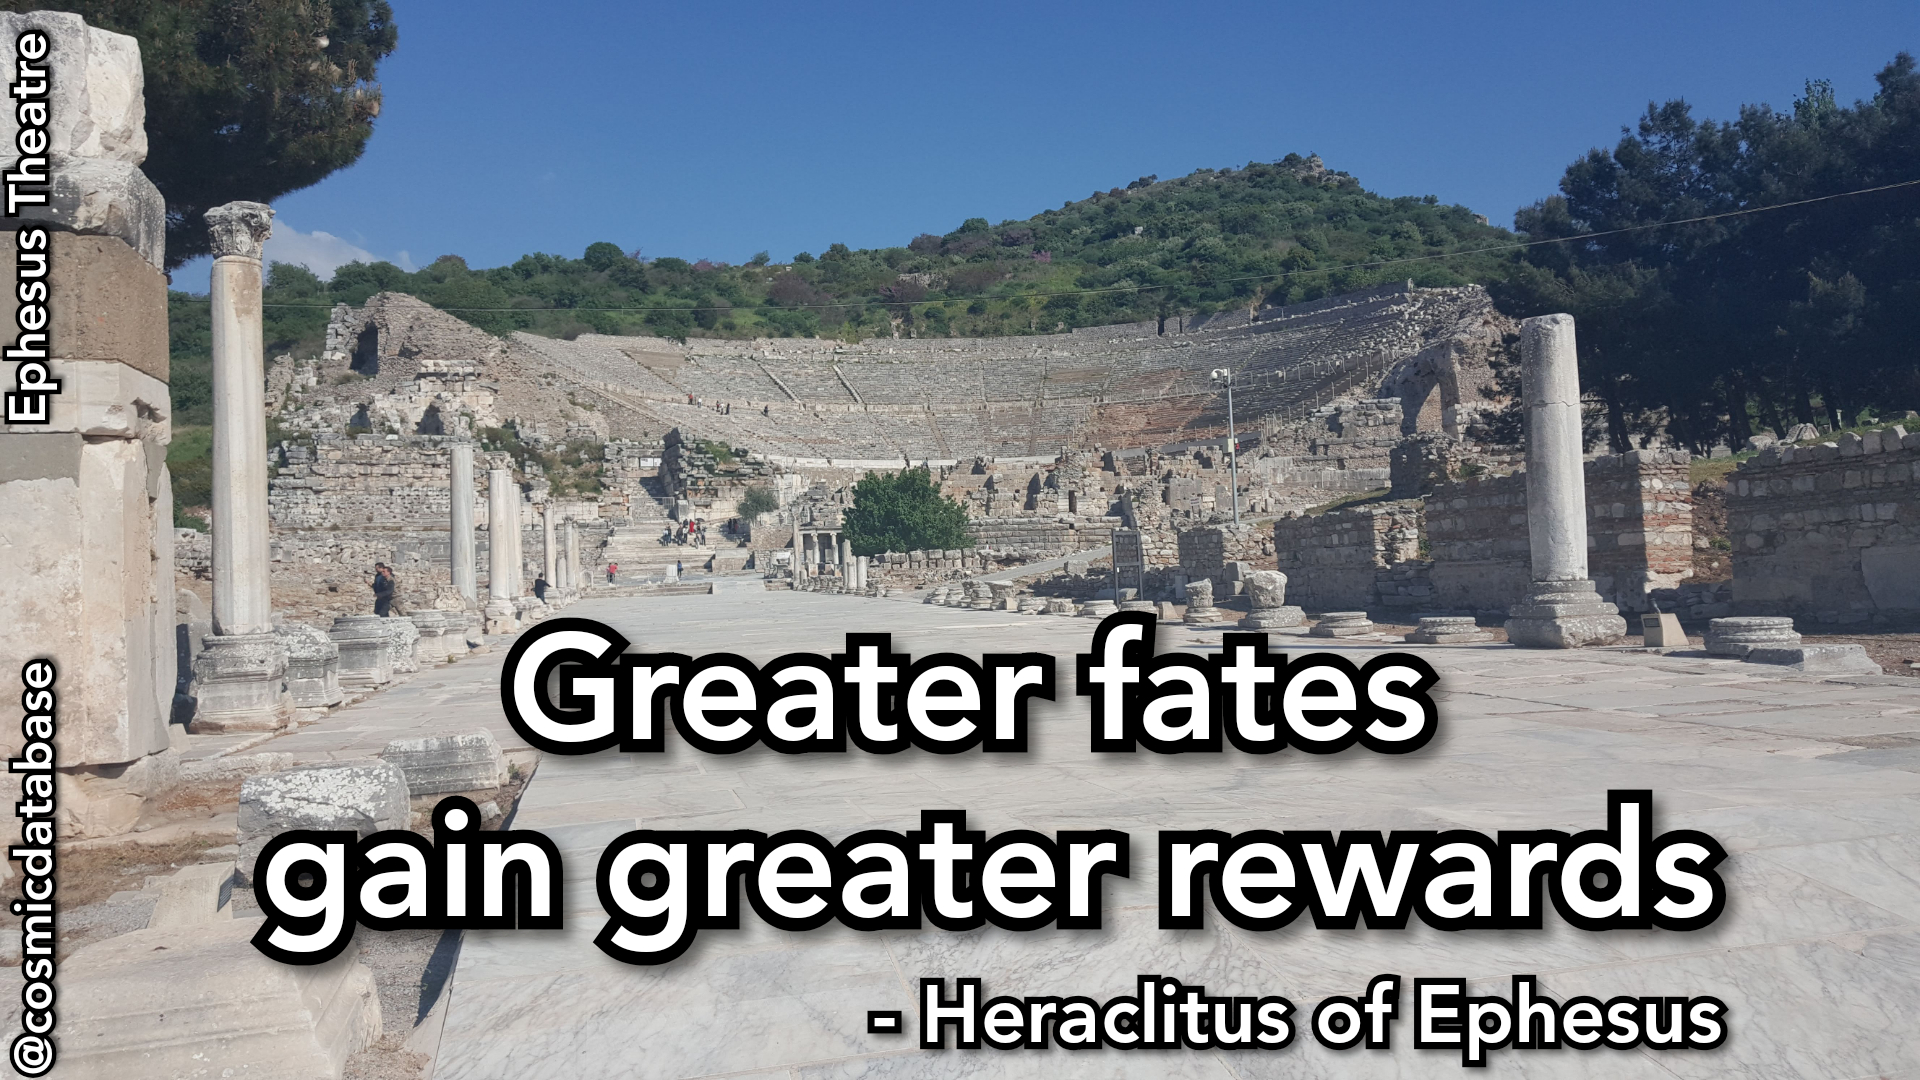 Greater fates gain greater rewards. – Heraclitus of Ephesus [1080×1920] [OC]